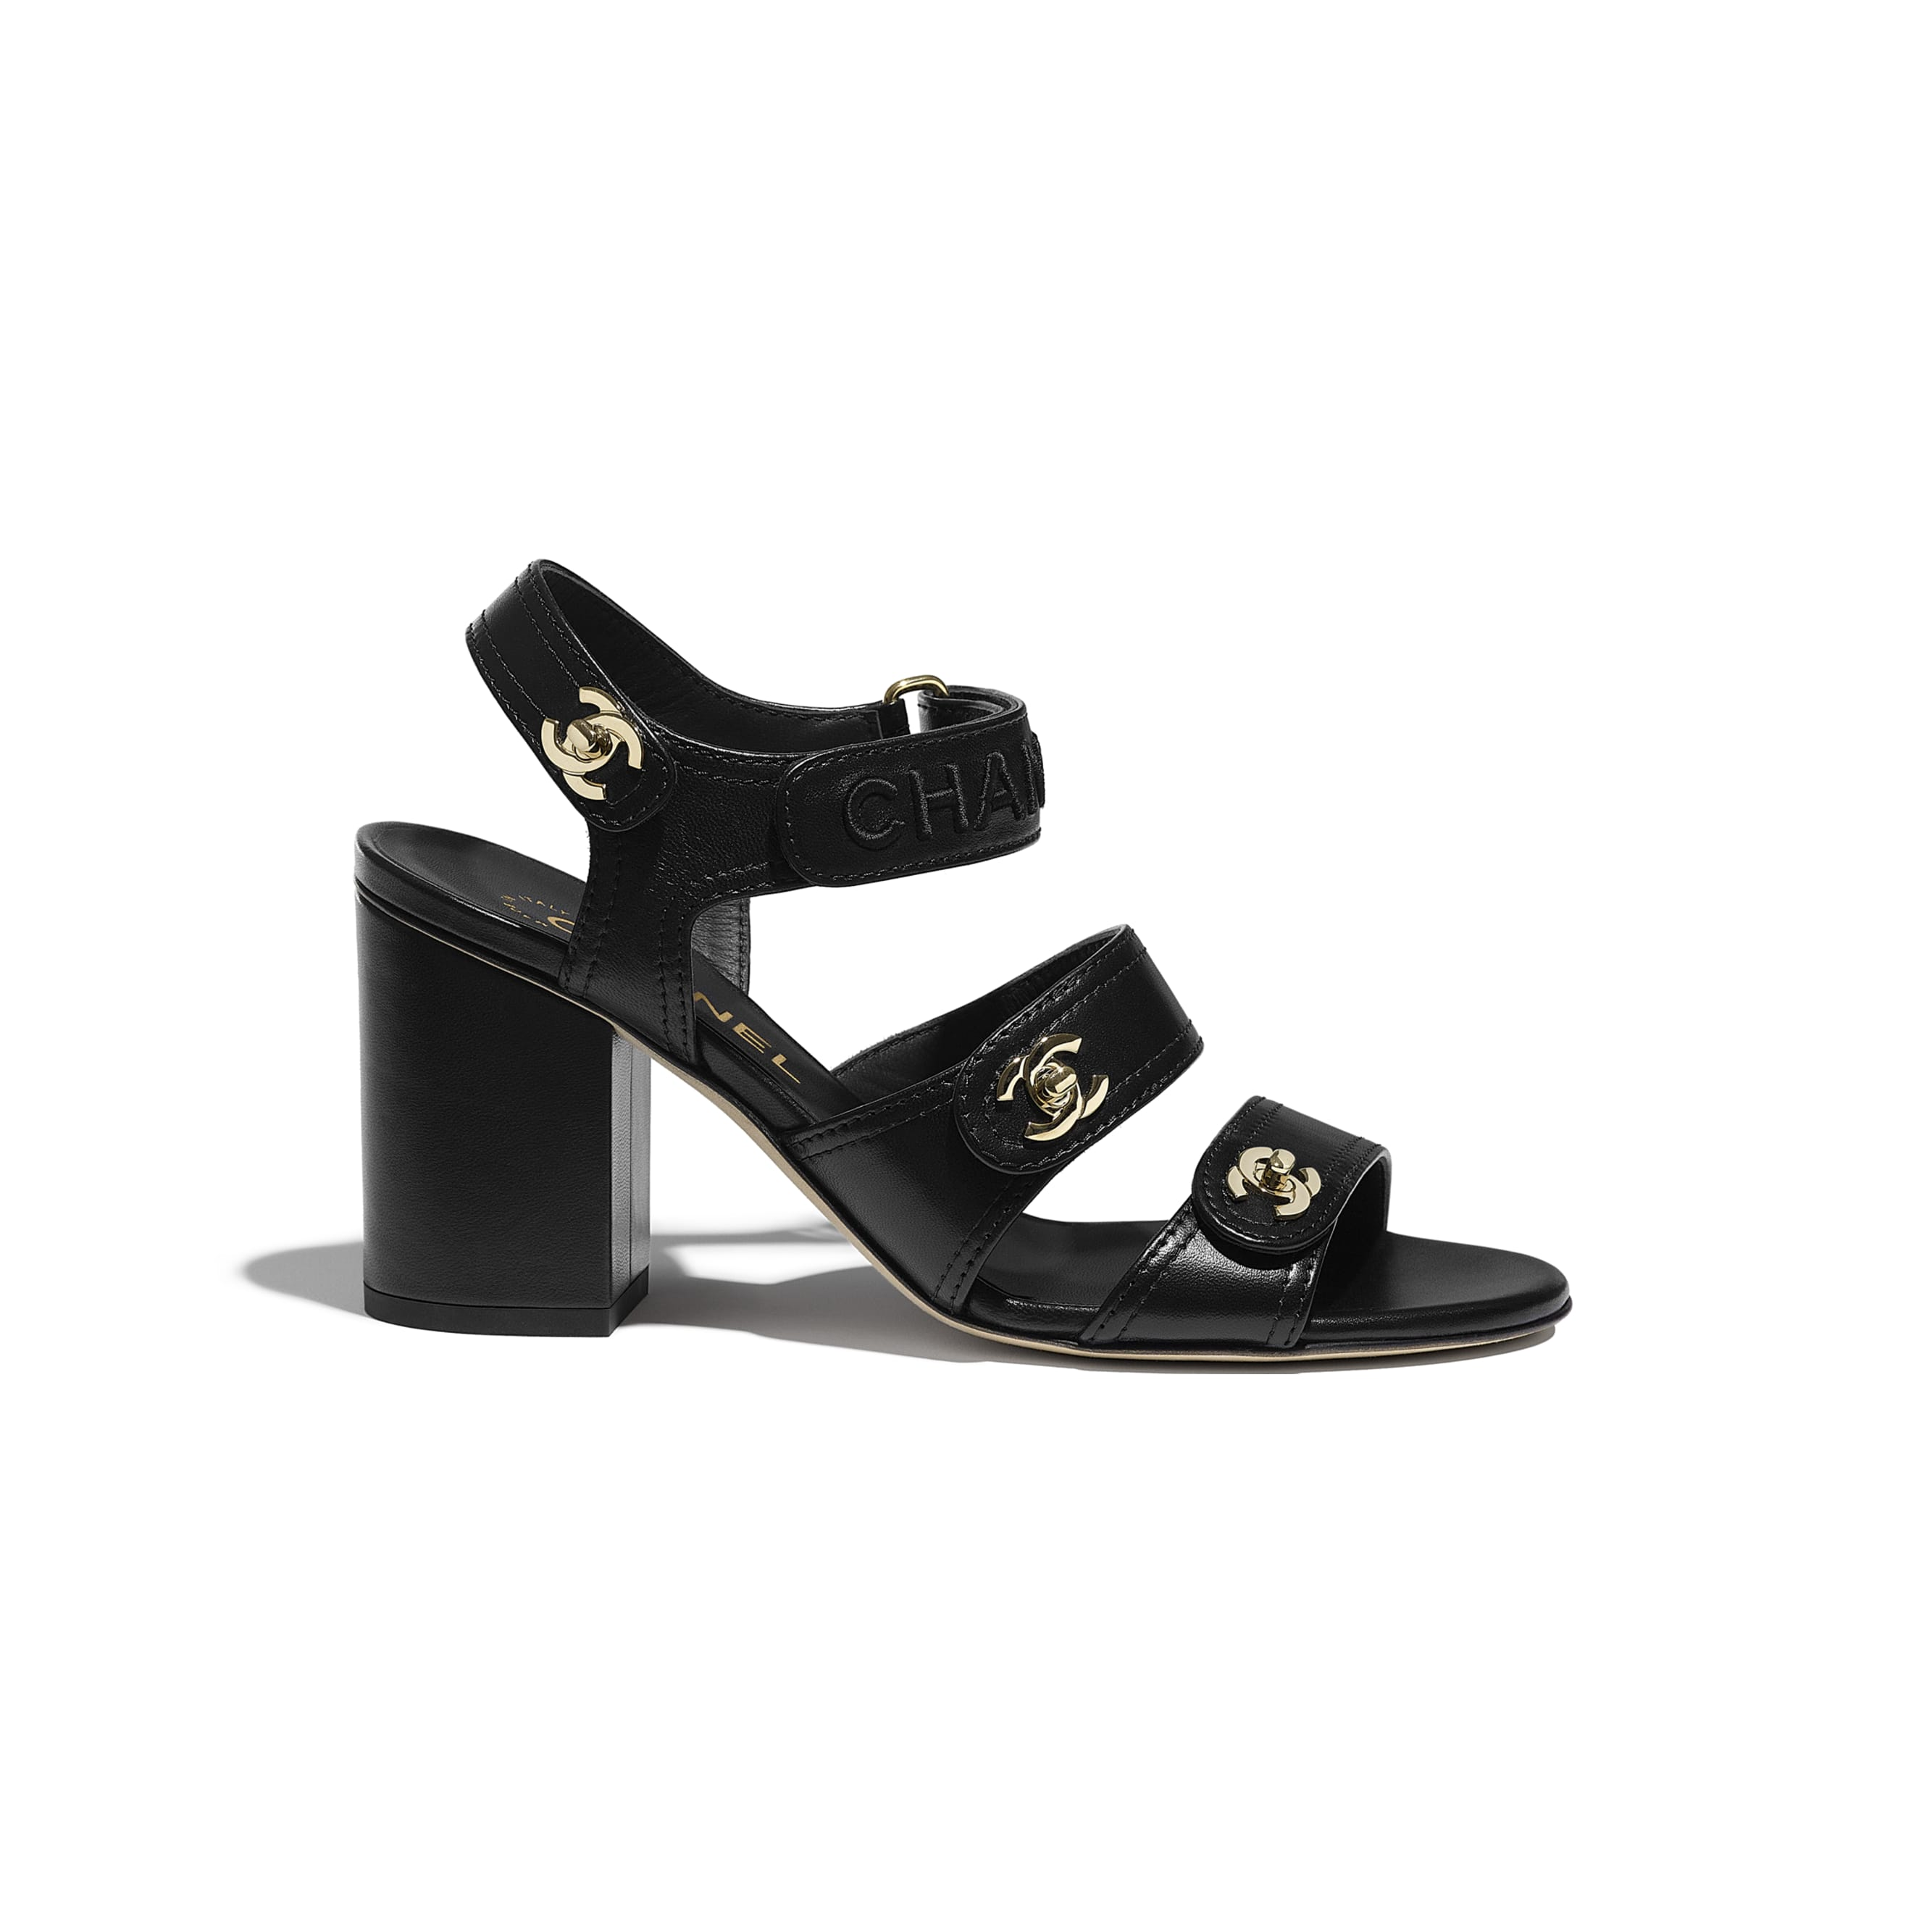 Sandals - Black - Lambskin - CHANEL - Default view - see standard sized version